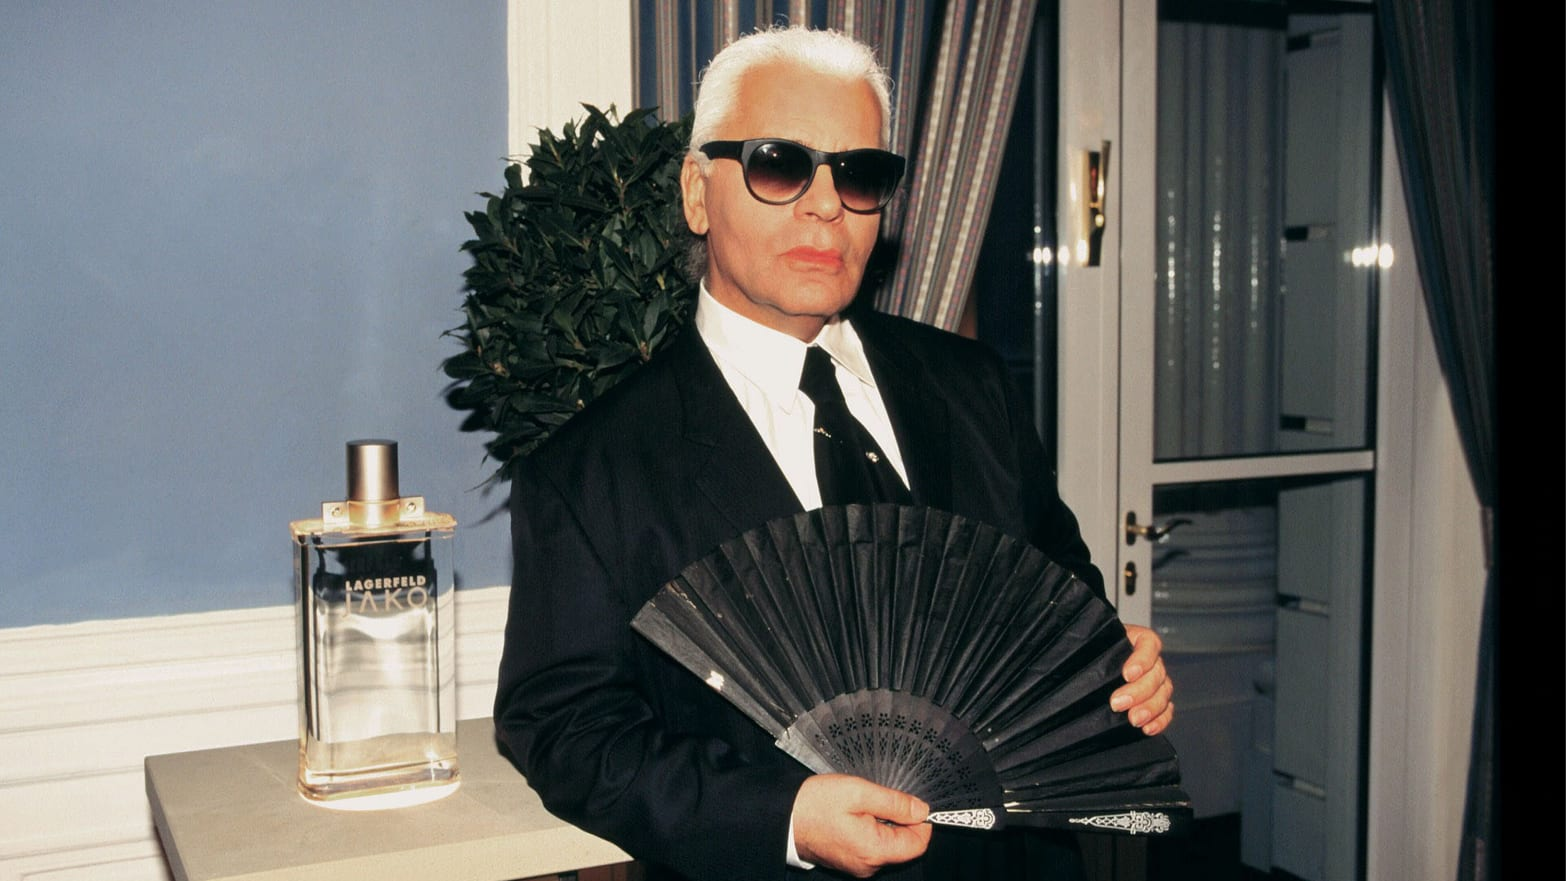 02ff0d1c1b44a9 Karl Lagerfeld: Inside His Passionate Life of Fashion, Celebrity ...